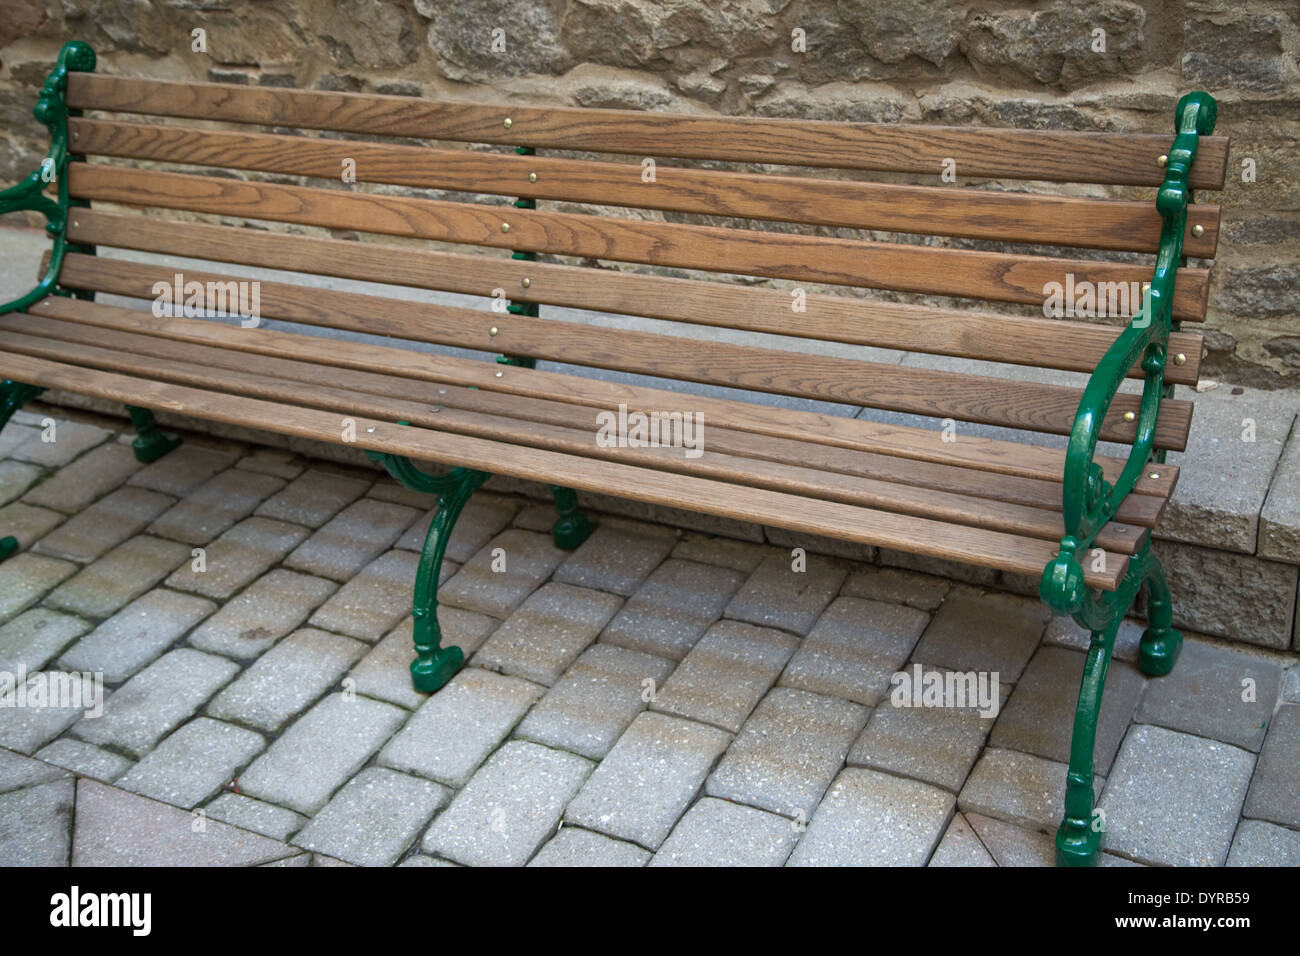 Park Bench Wooden Metal Stock Photos Park Bench Wooden Metal Stock